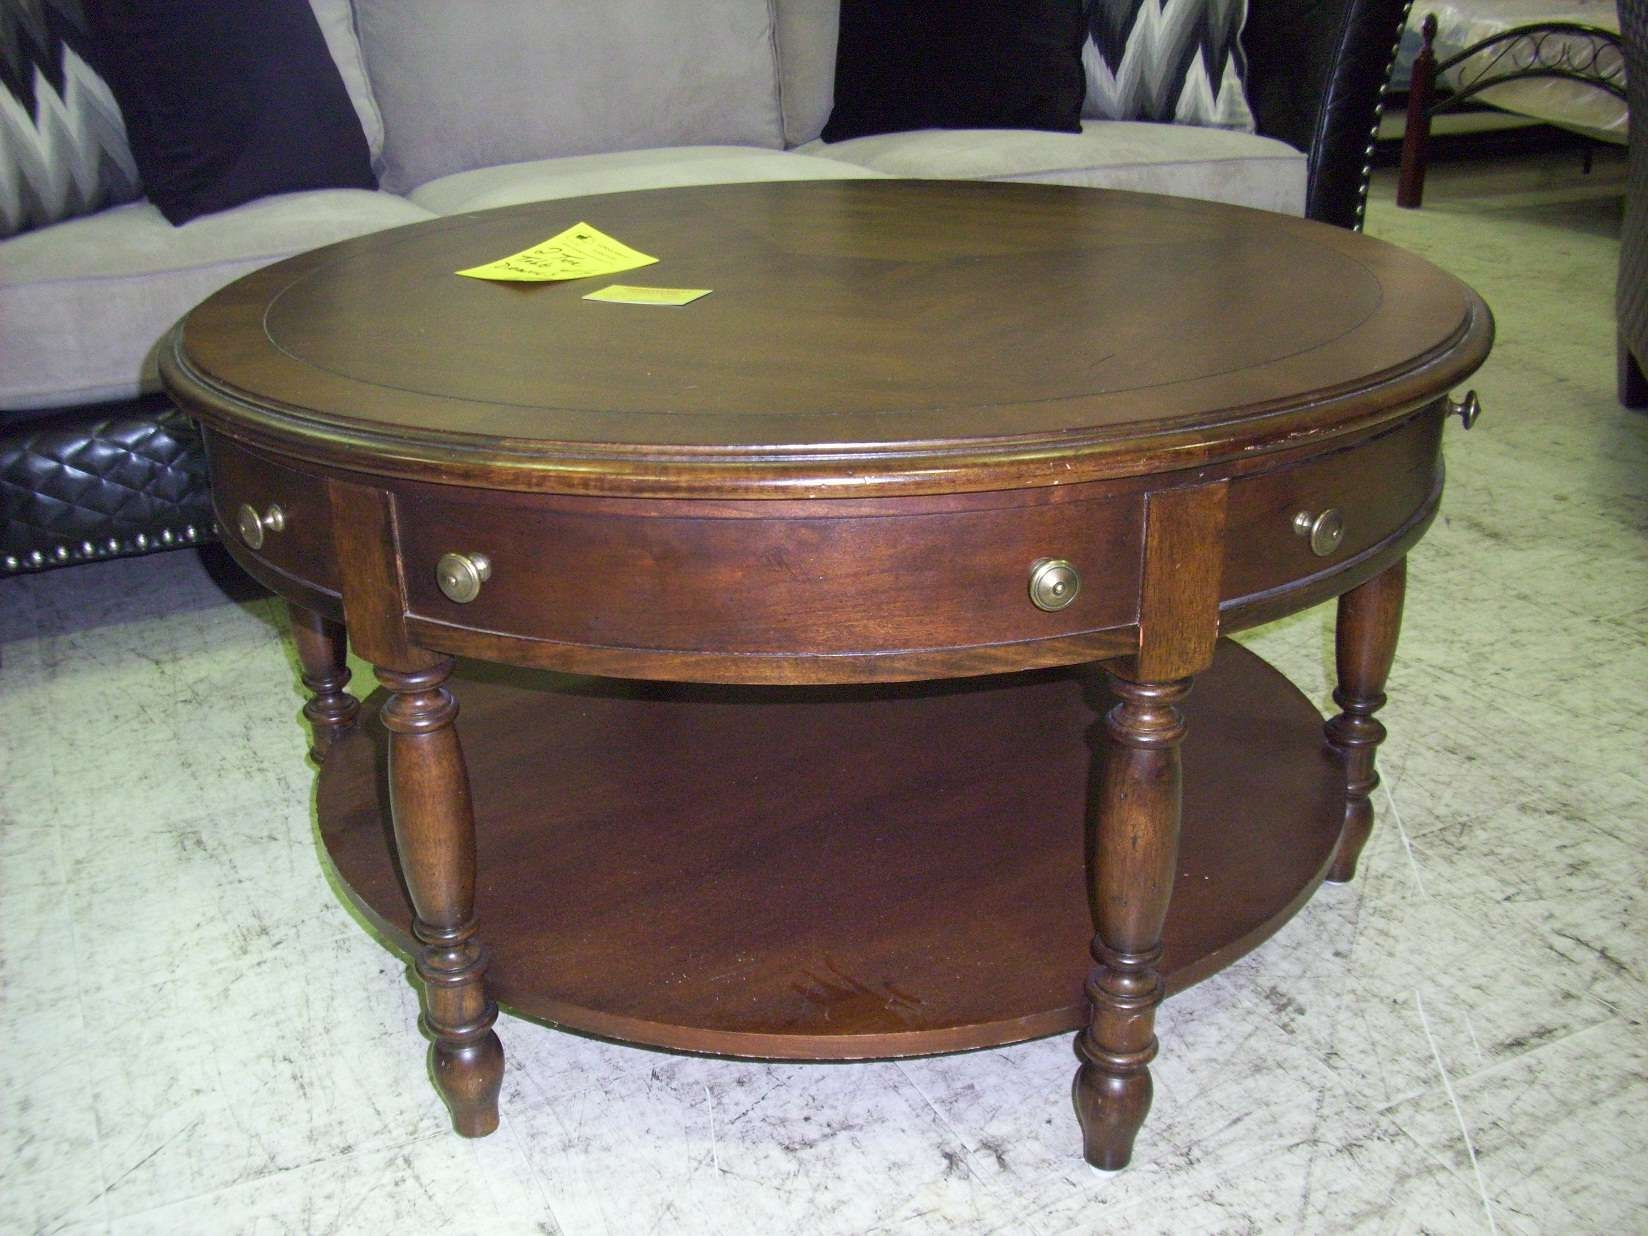 Most Recently Released Round Coffee Tables With Drawers Regarding Round Coffee Tables With Glass Top Wood Coffee Table With Drawer (View 2 of 20)